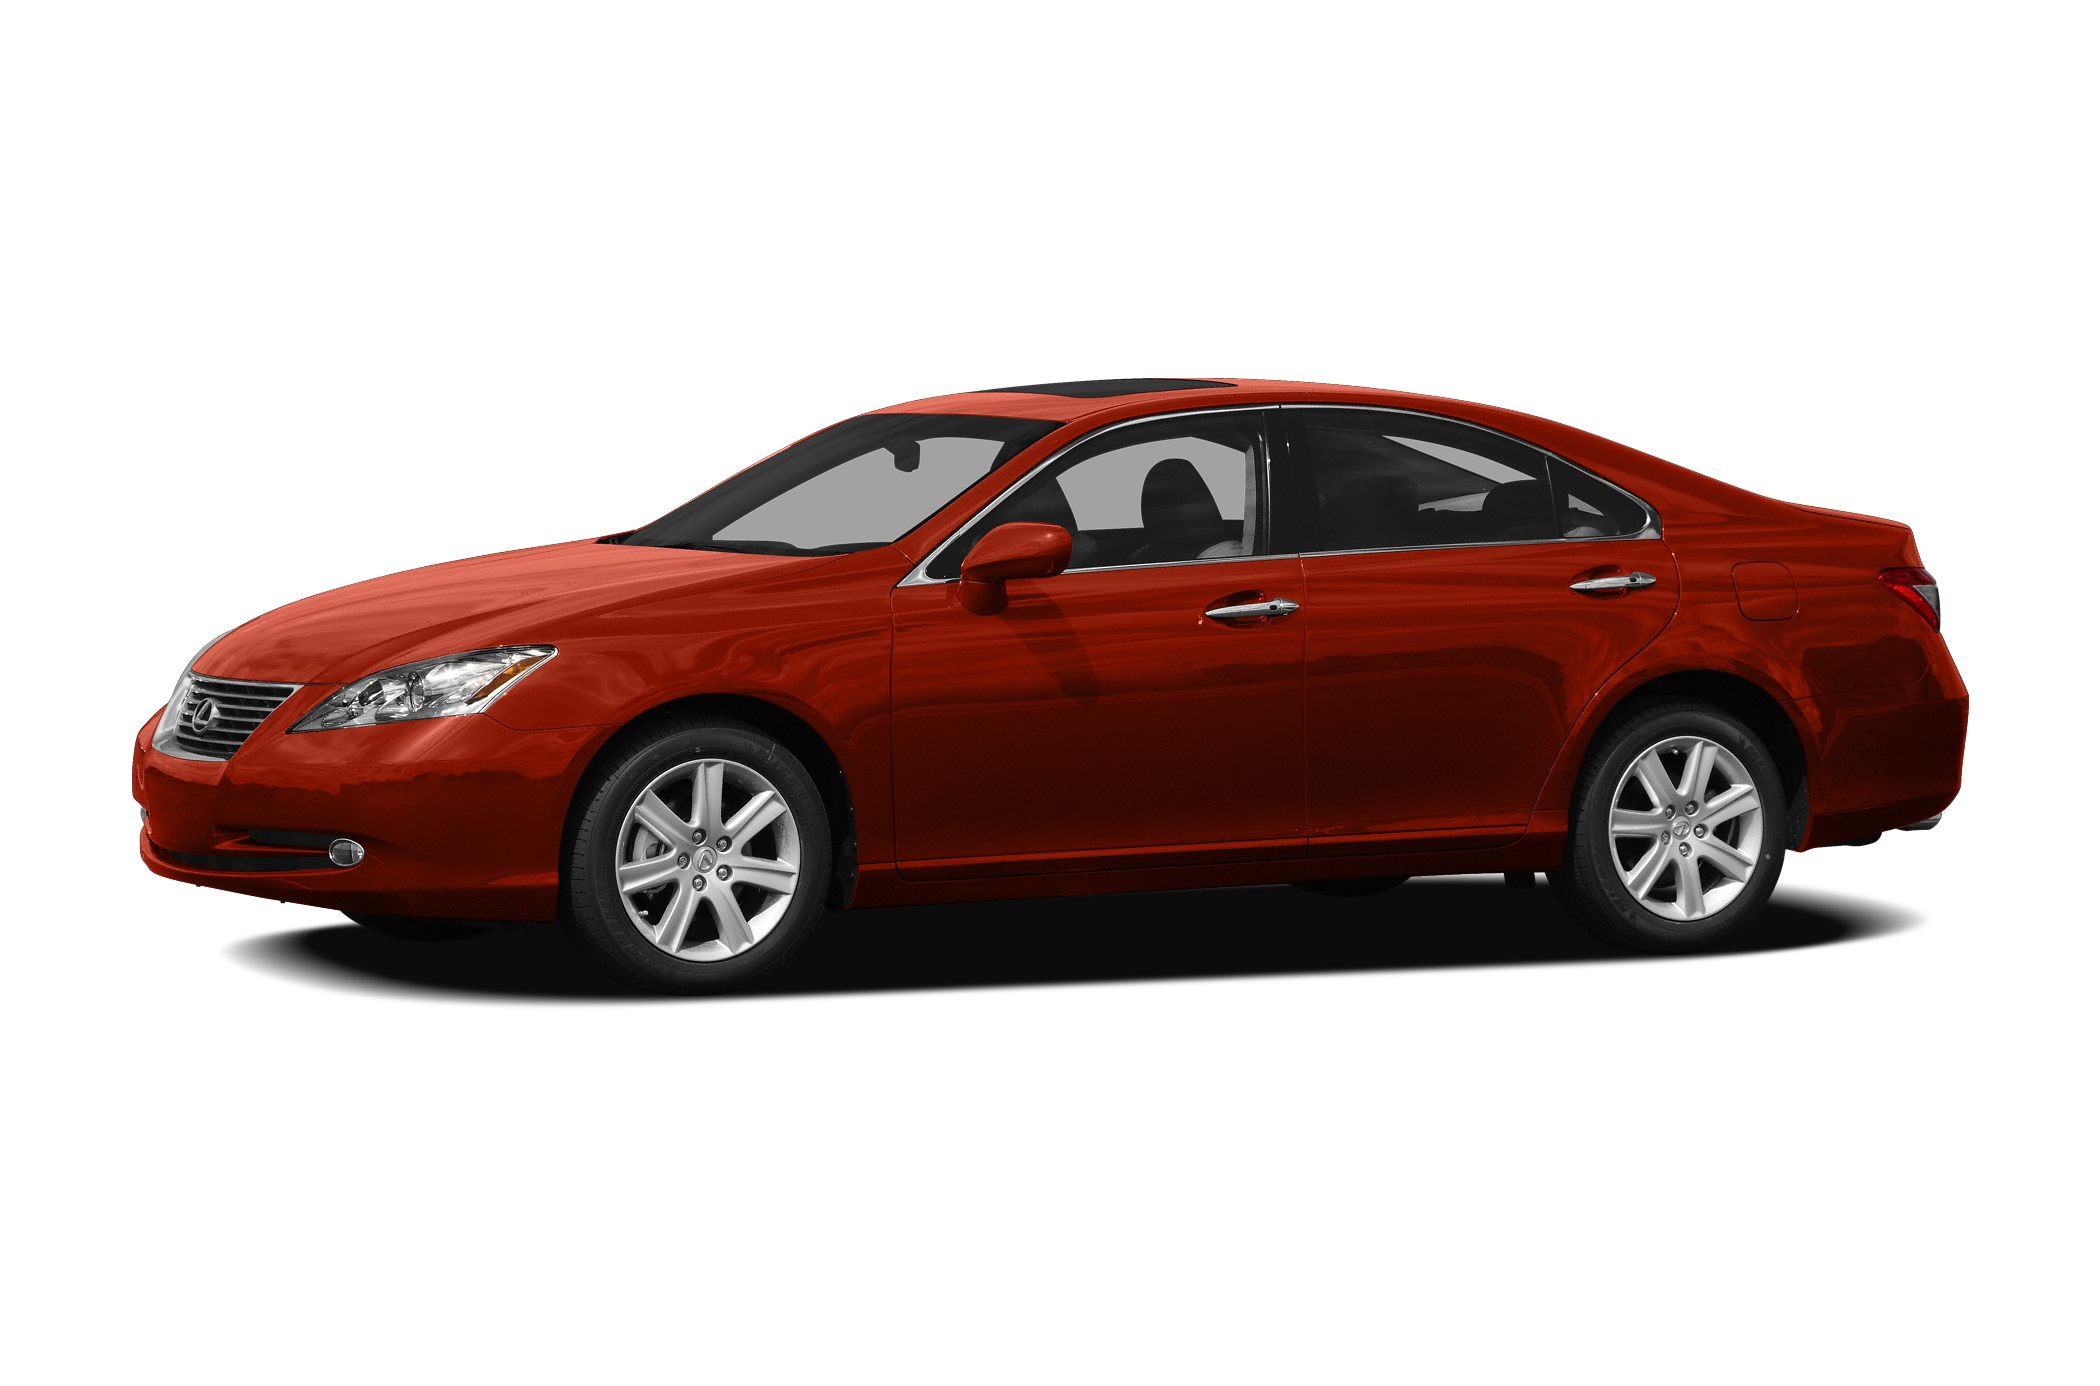 2008 Lexus ES 350 Sedan for sale in Rolla for $15,475 with 86,141 miles